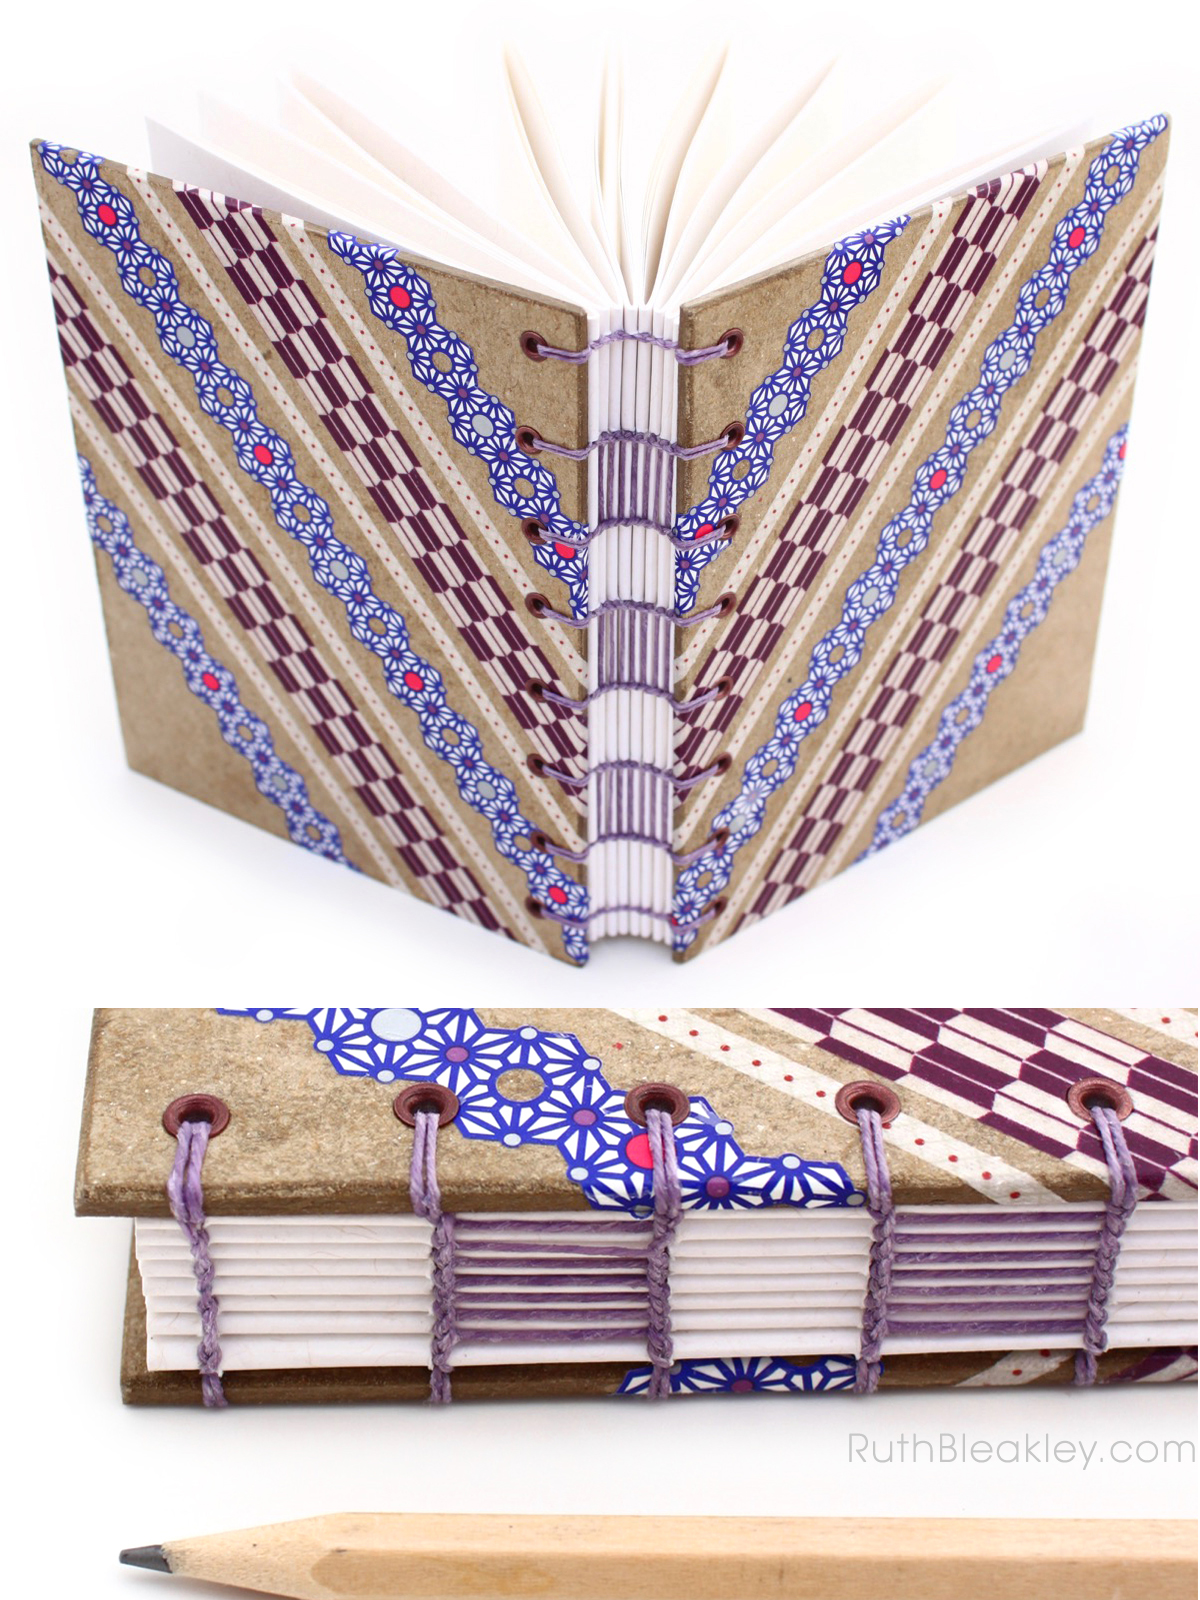 Purple and Blue Lace Washi Tape Journal handmade by Ruth Bleakley - 7